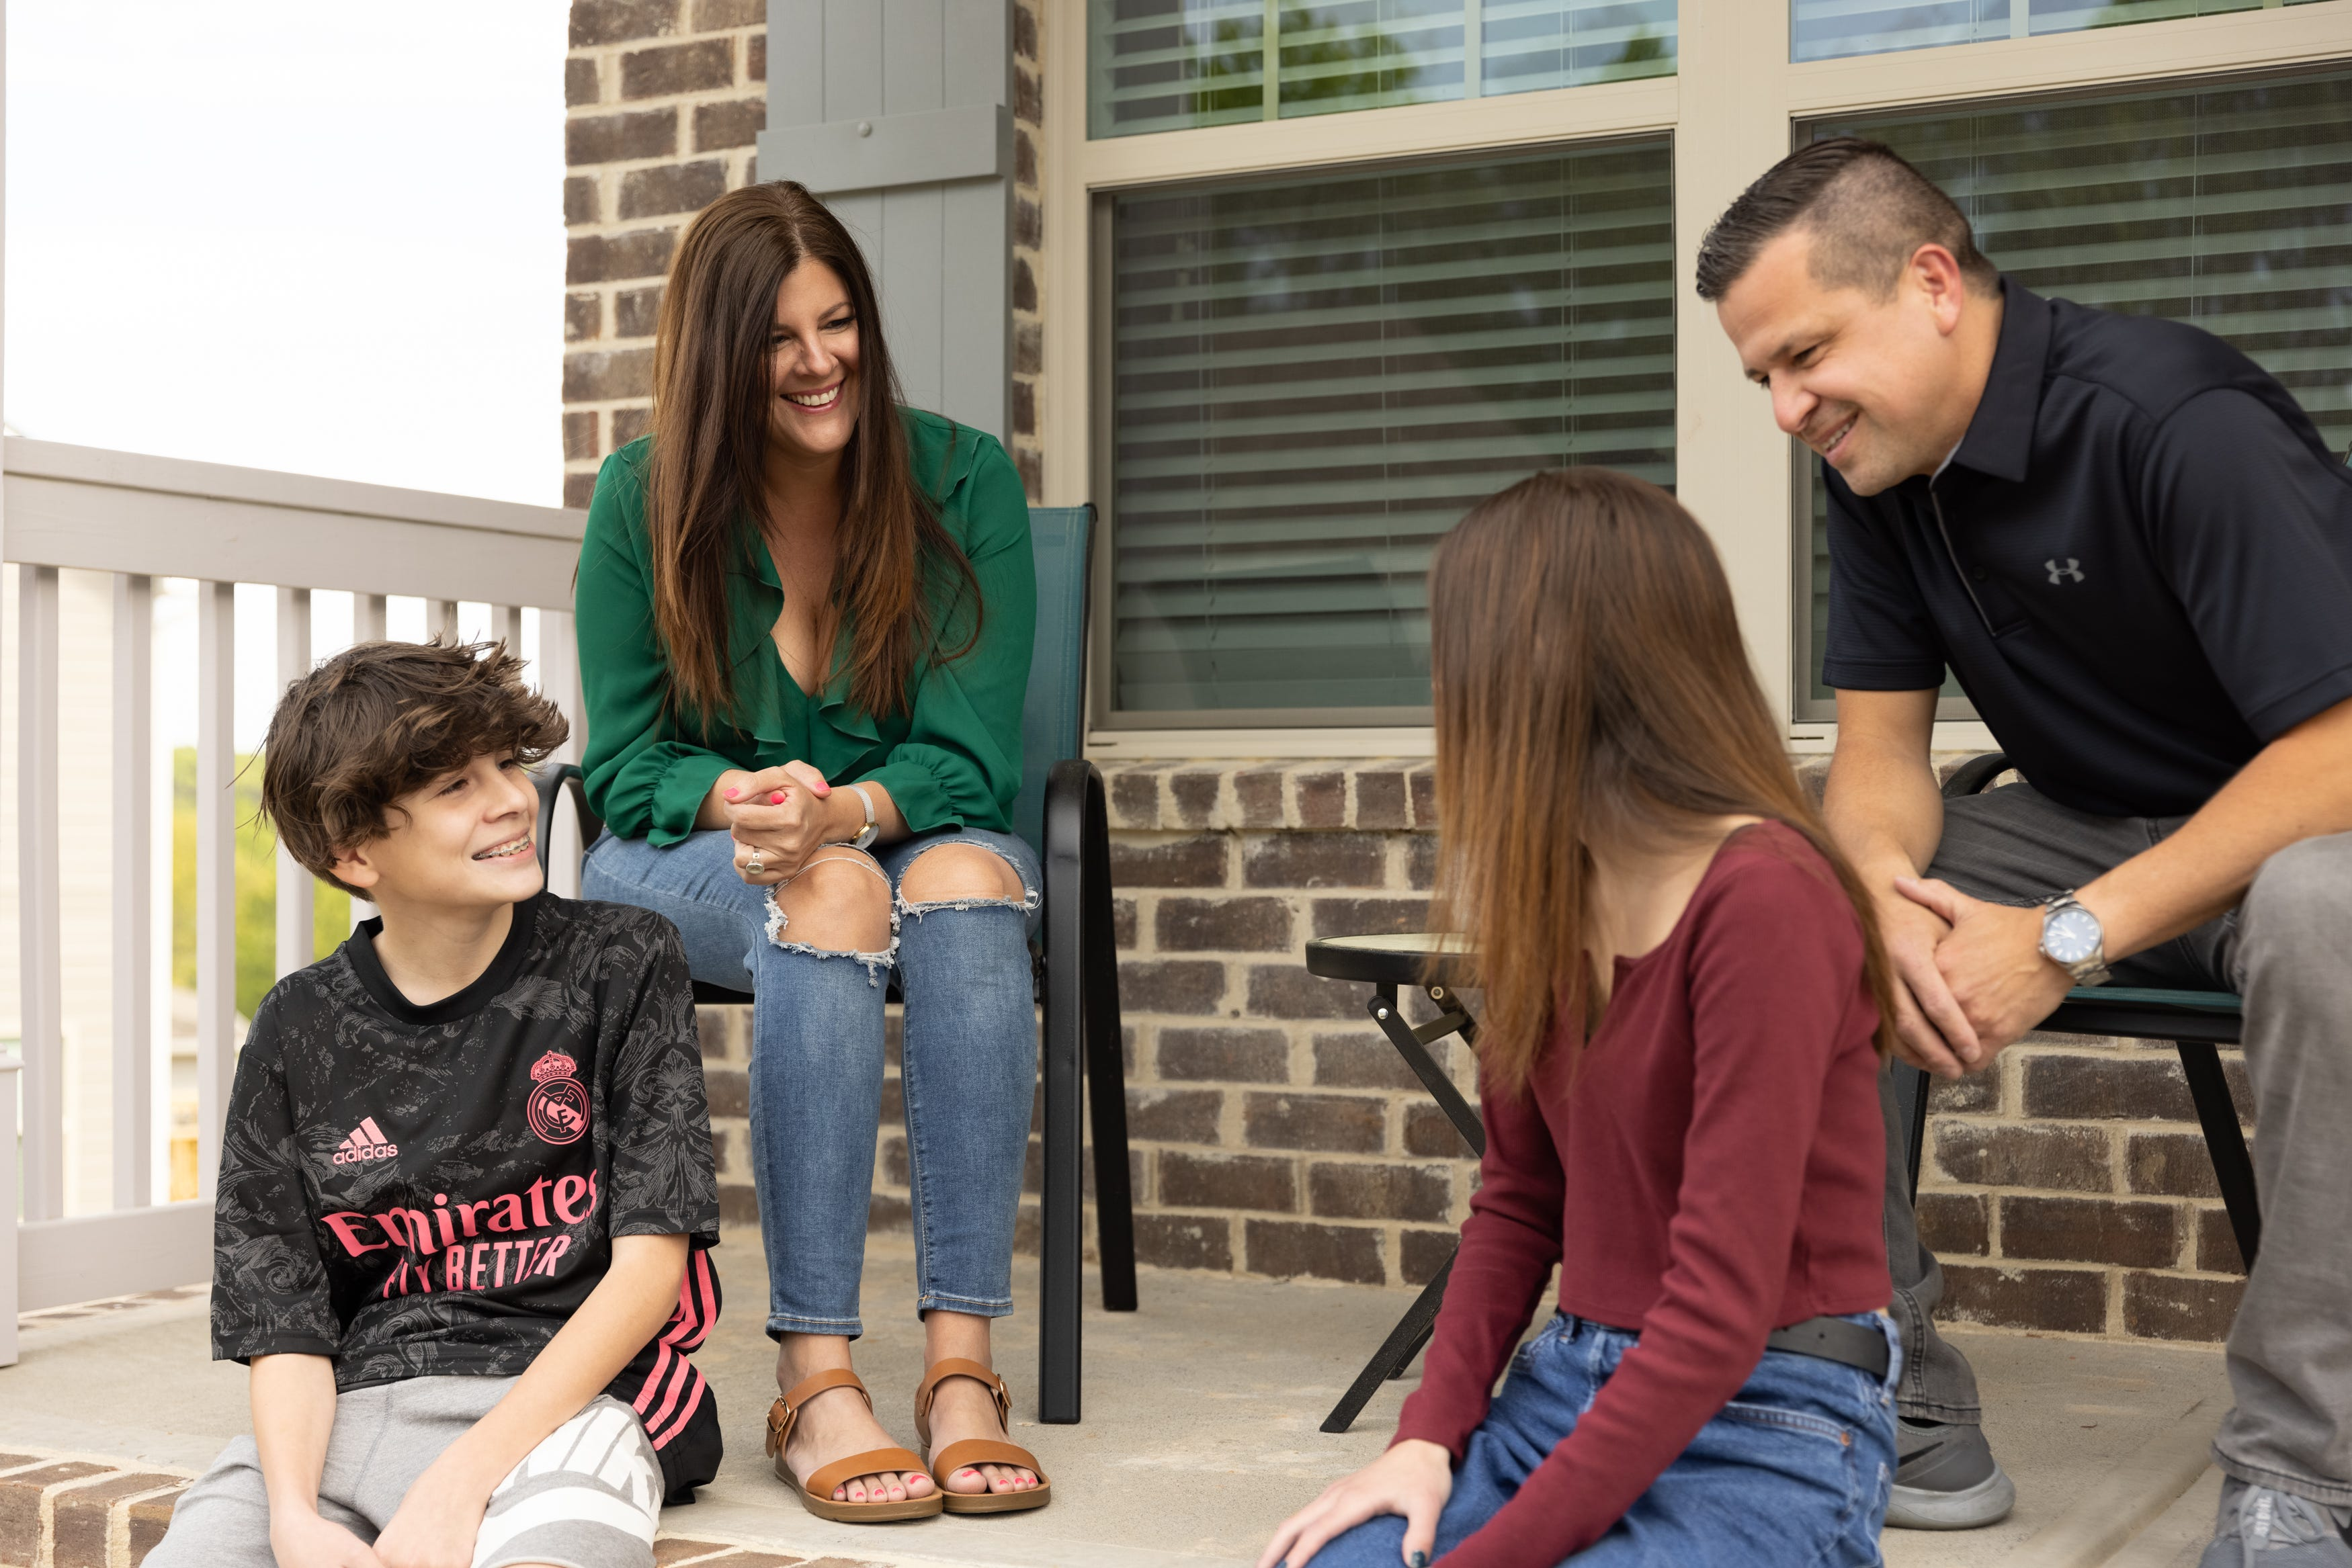 Dennise Cacho, 43, with Cesar Ardila and children Andrés Ardila, 13, and Karyme Ardila, 17 in their rental home. Cacho, a human resources benefits counselor, from Dallas, Ga., sold her last home with Opendoor.